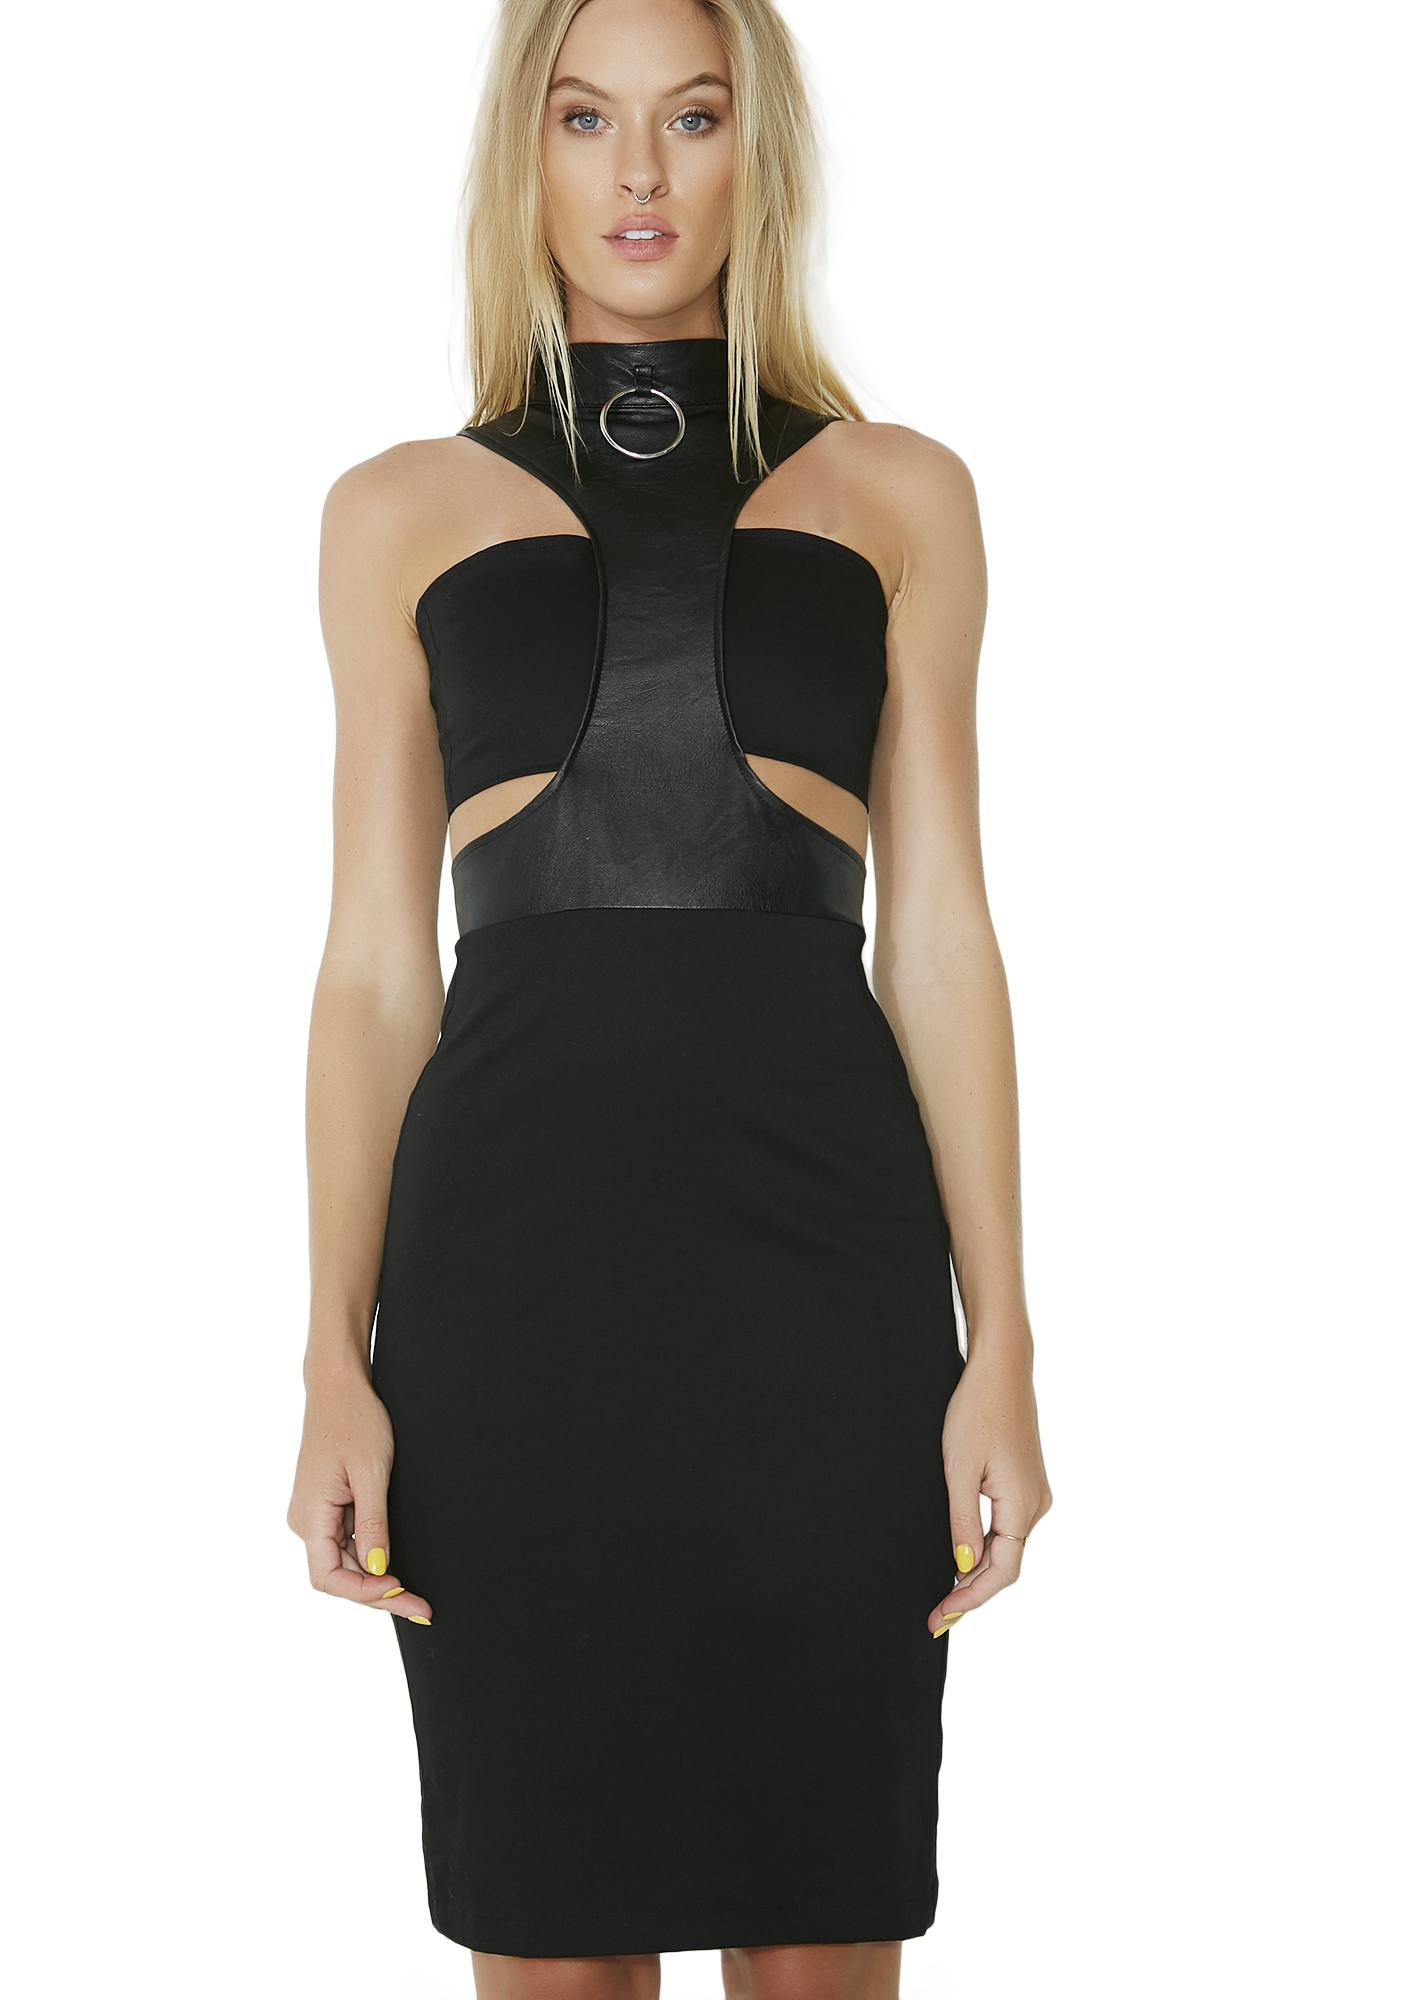 Disturbia Submission Dress